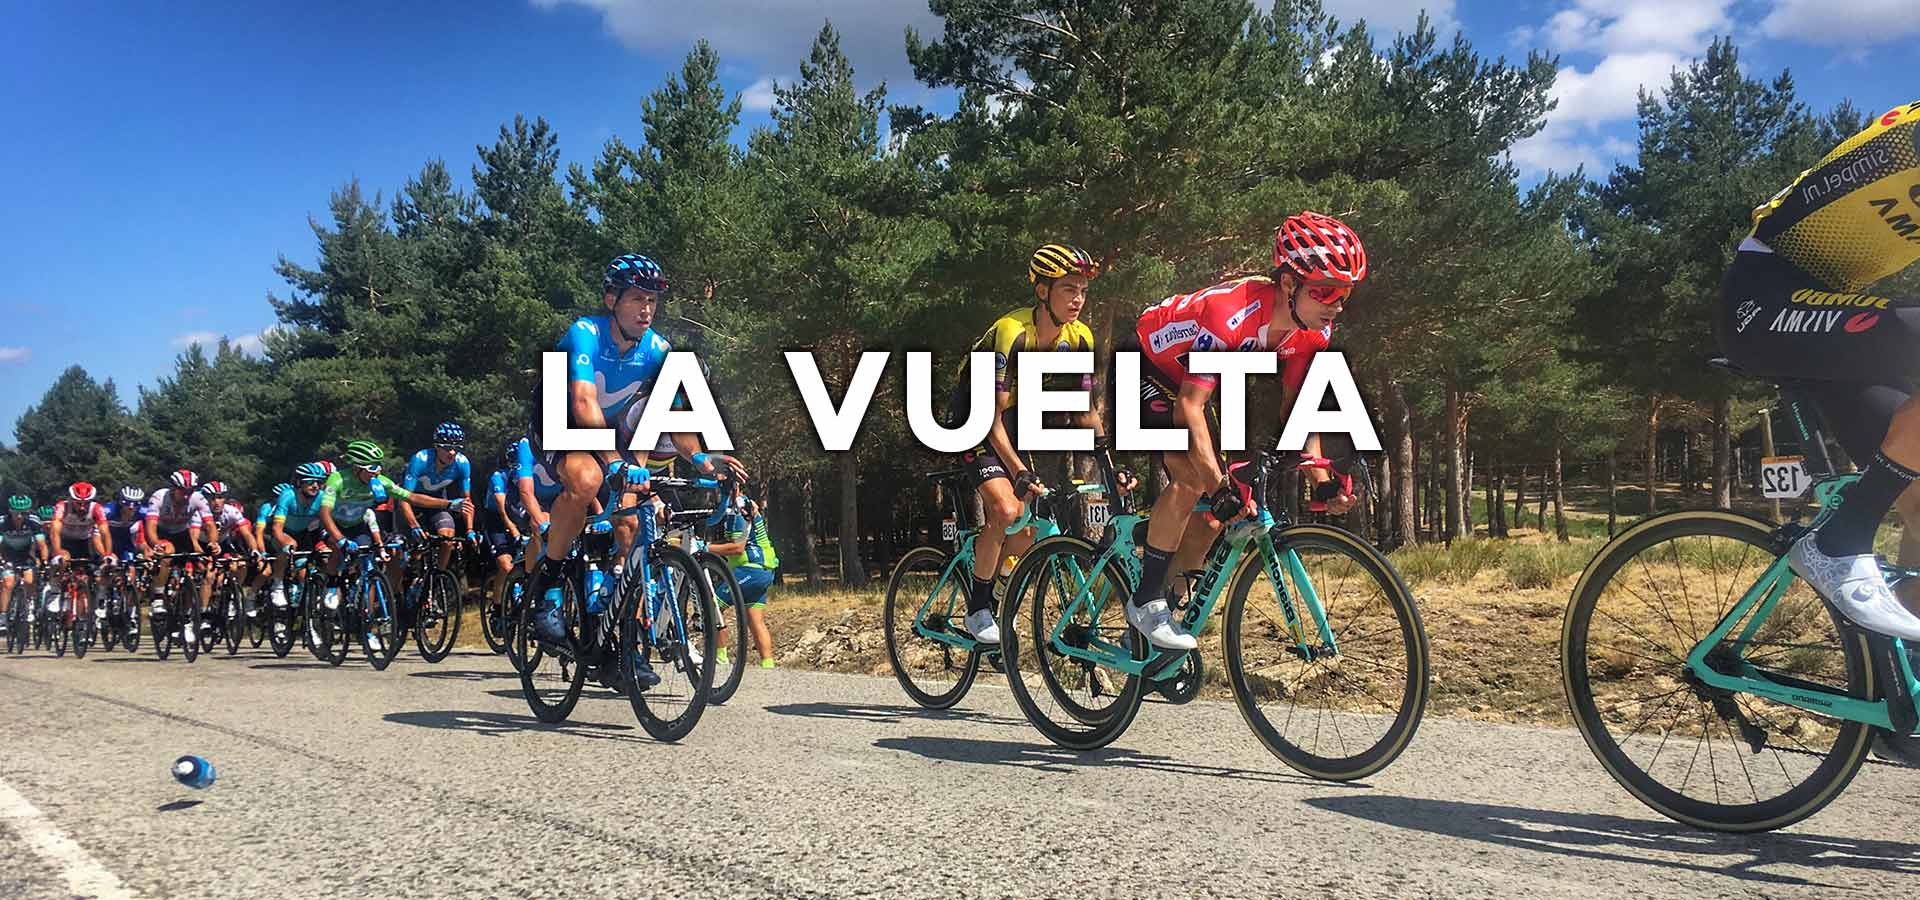 Cycling La Vuelta also known as the Tour of Spain